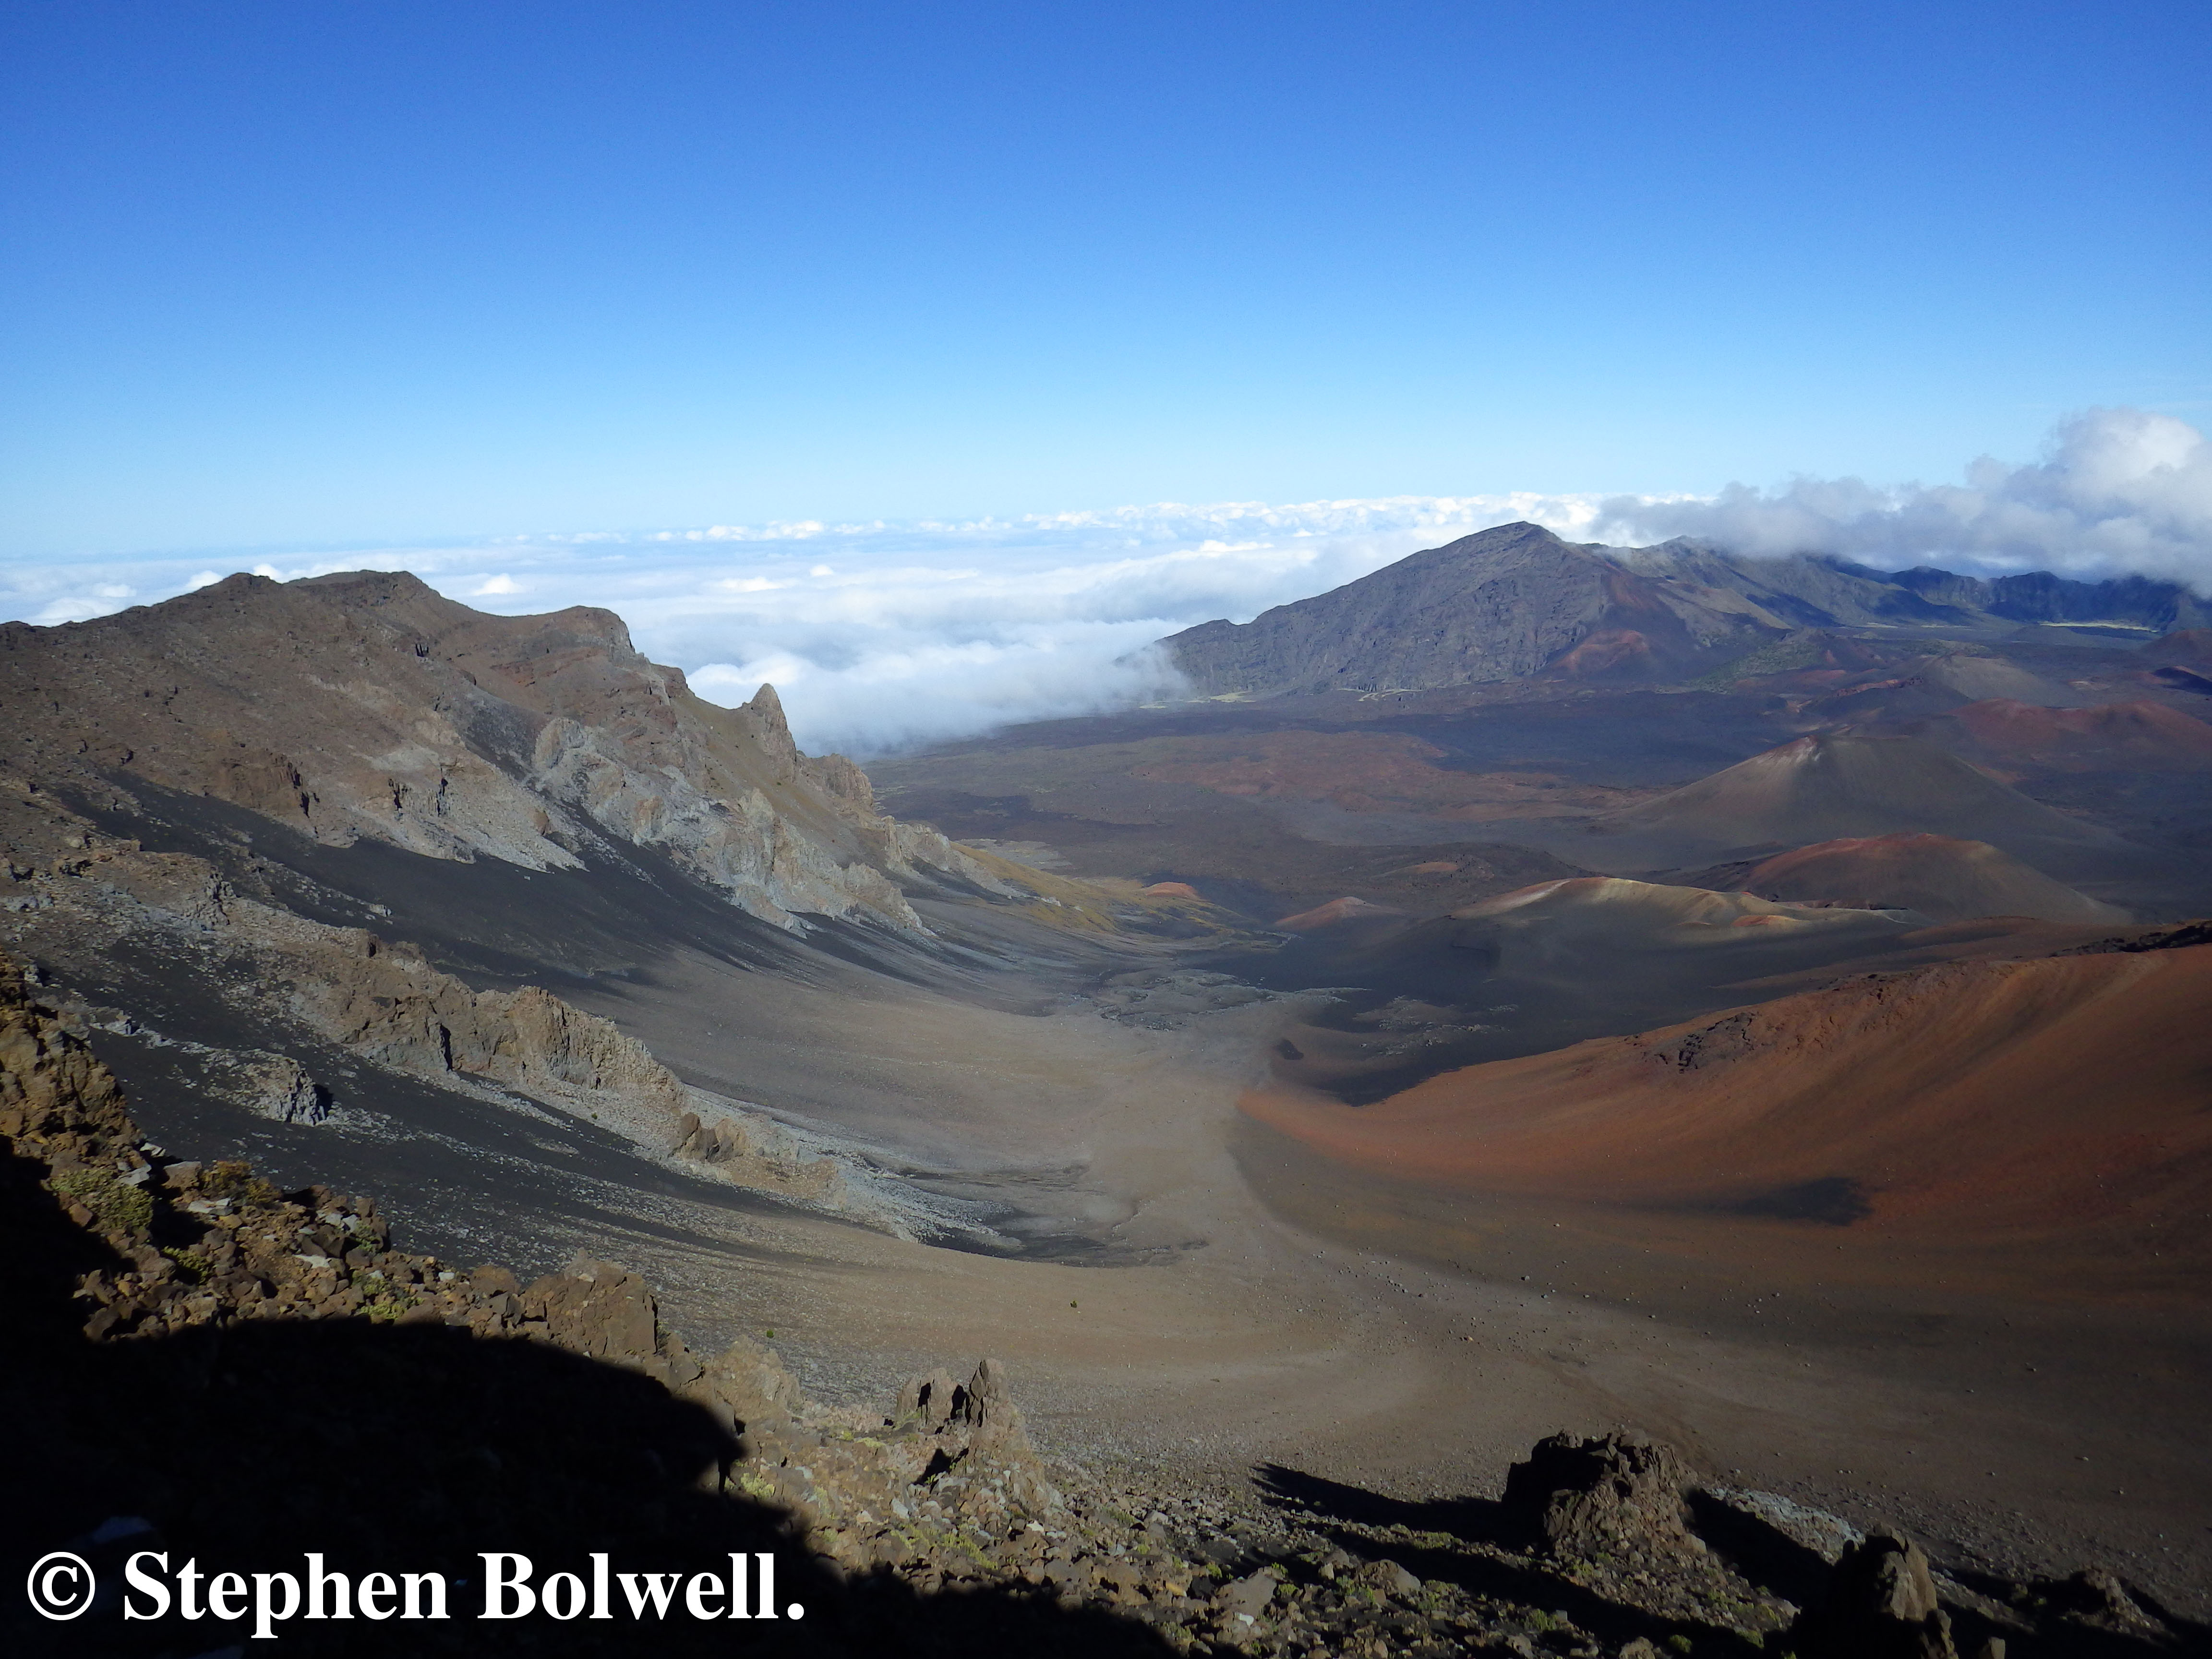 At the top of Haleakala the landscape is hardly a tropical paradise, but it is enchanting.